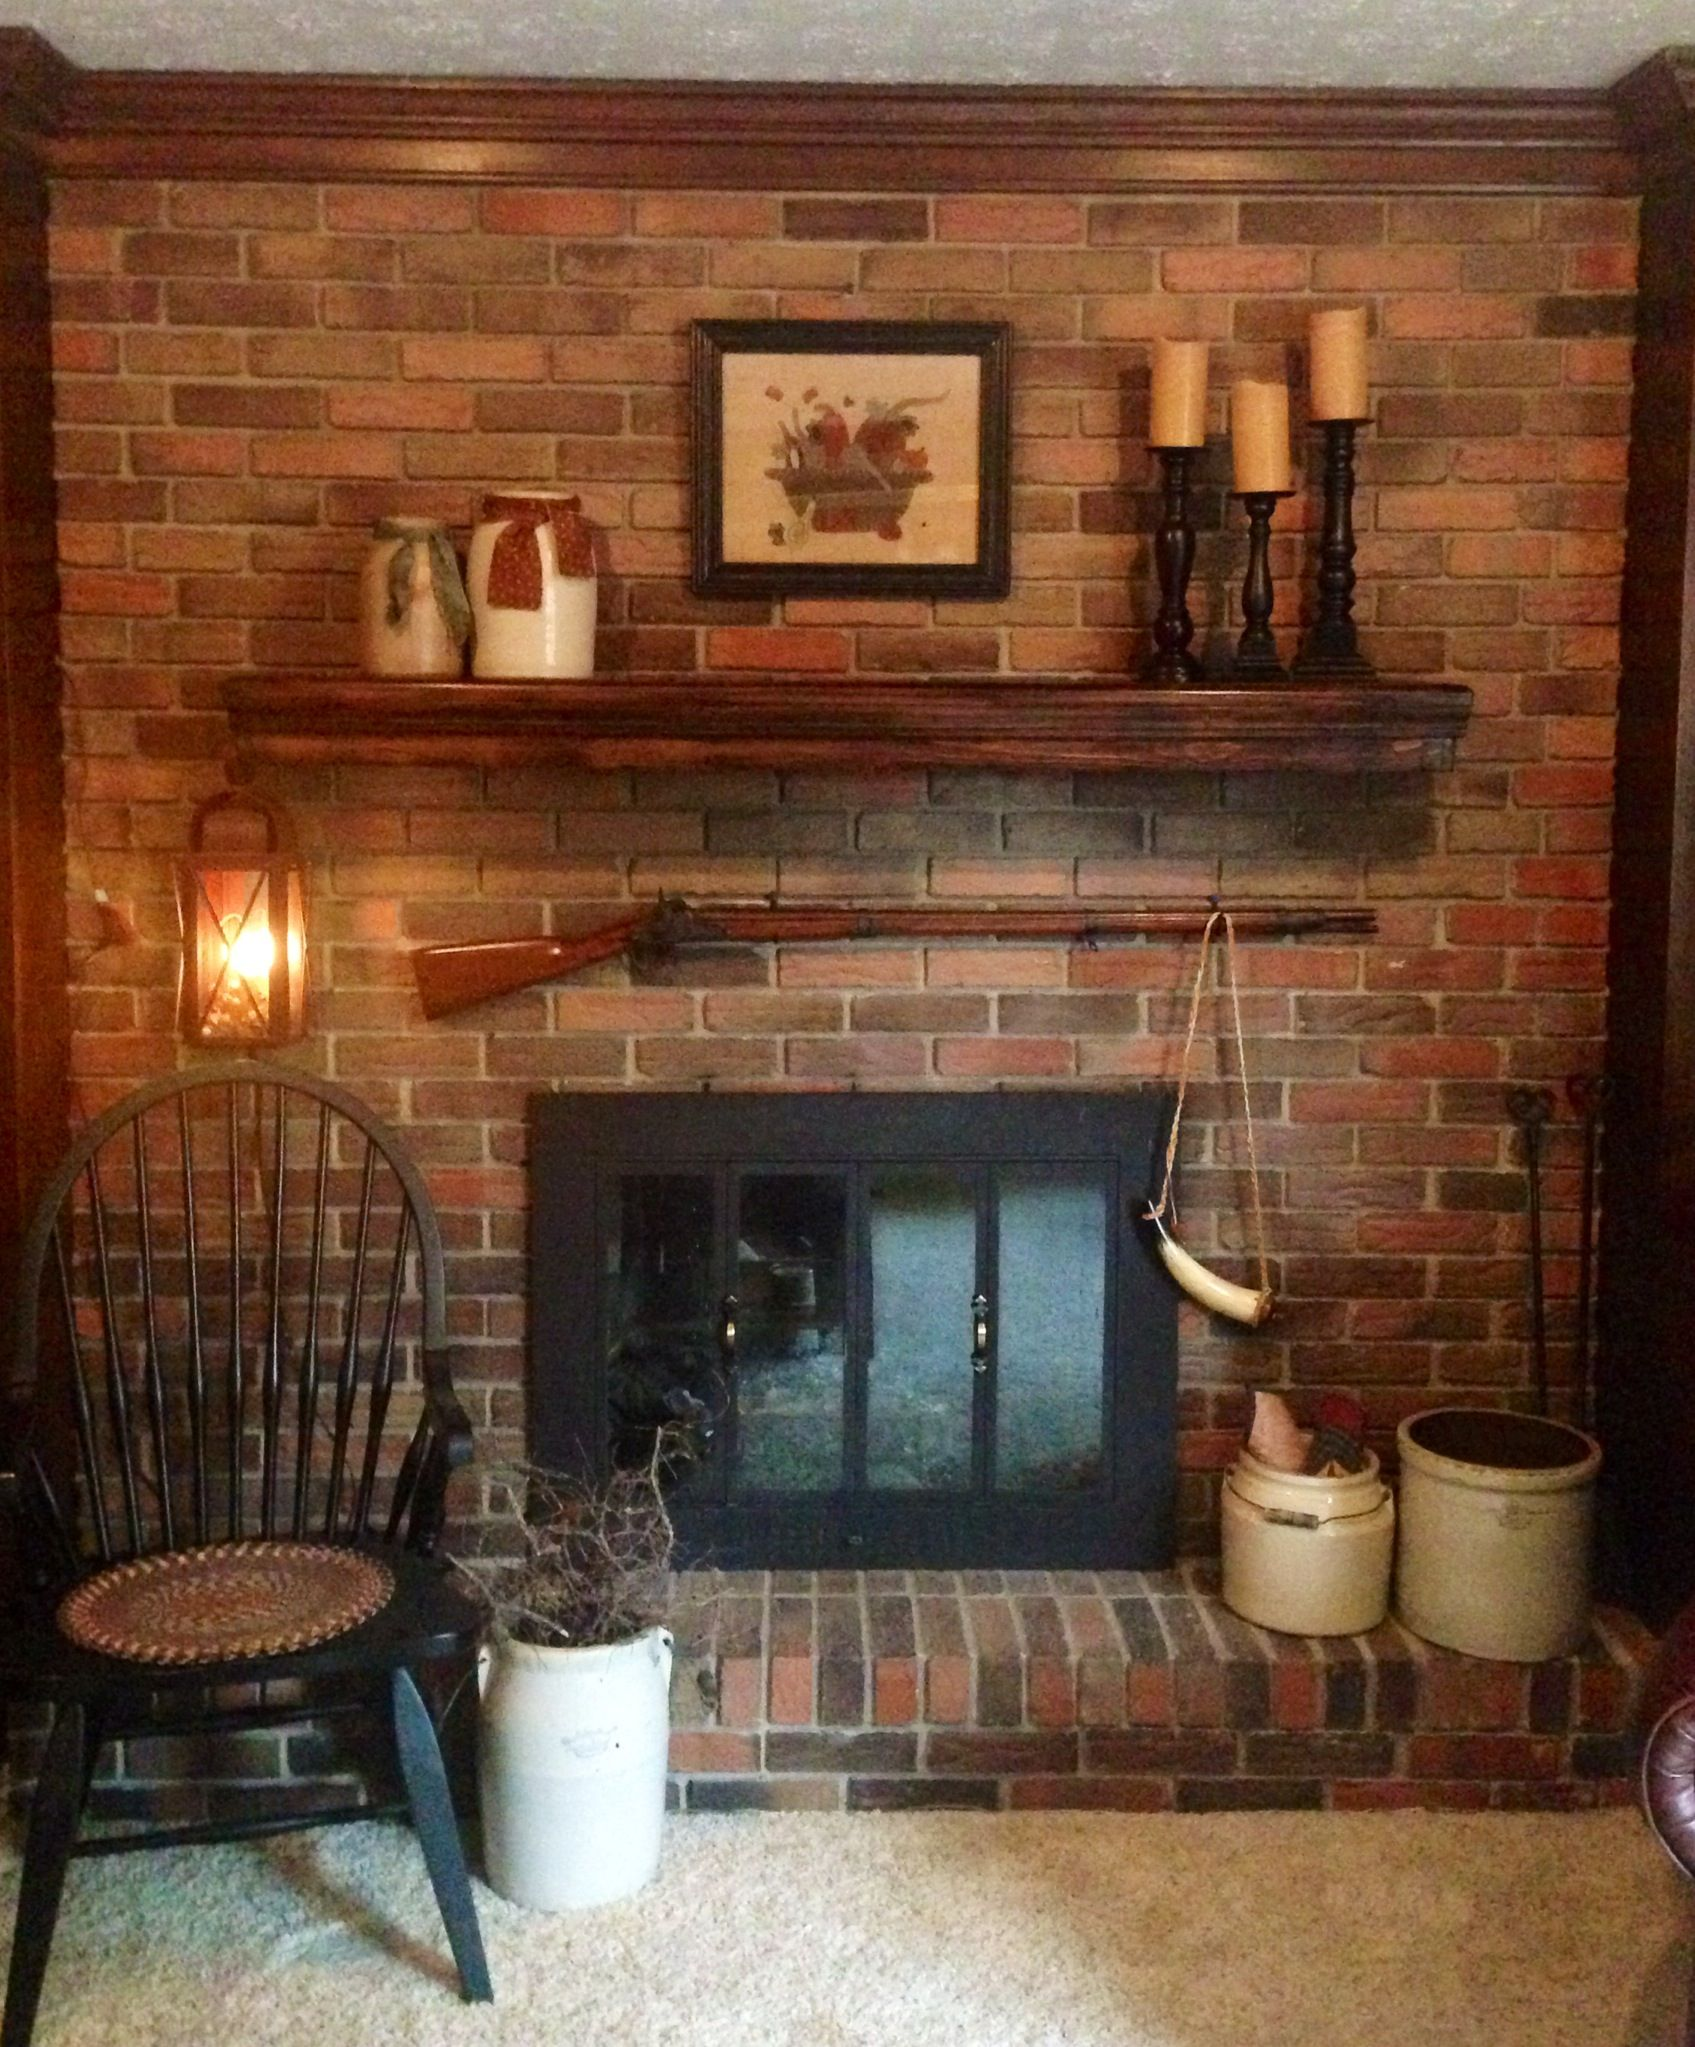 Primitive fireplace | primitive country decor | Pinterest